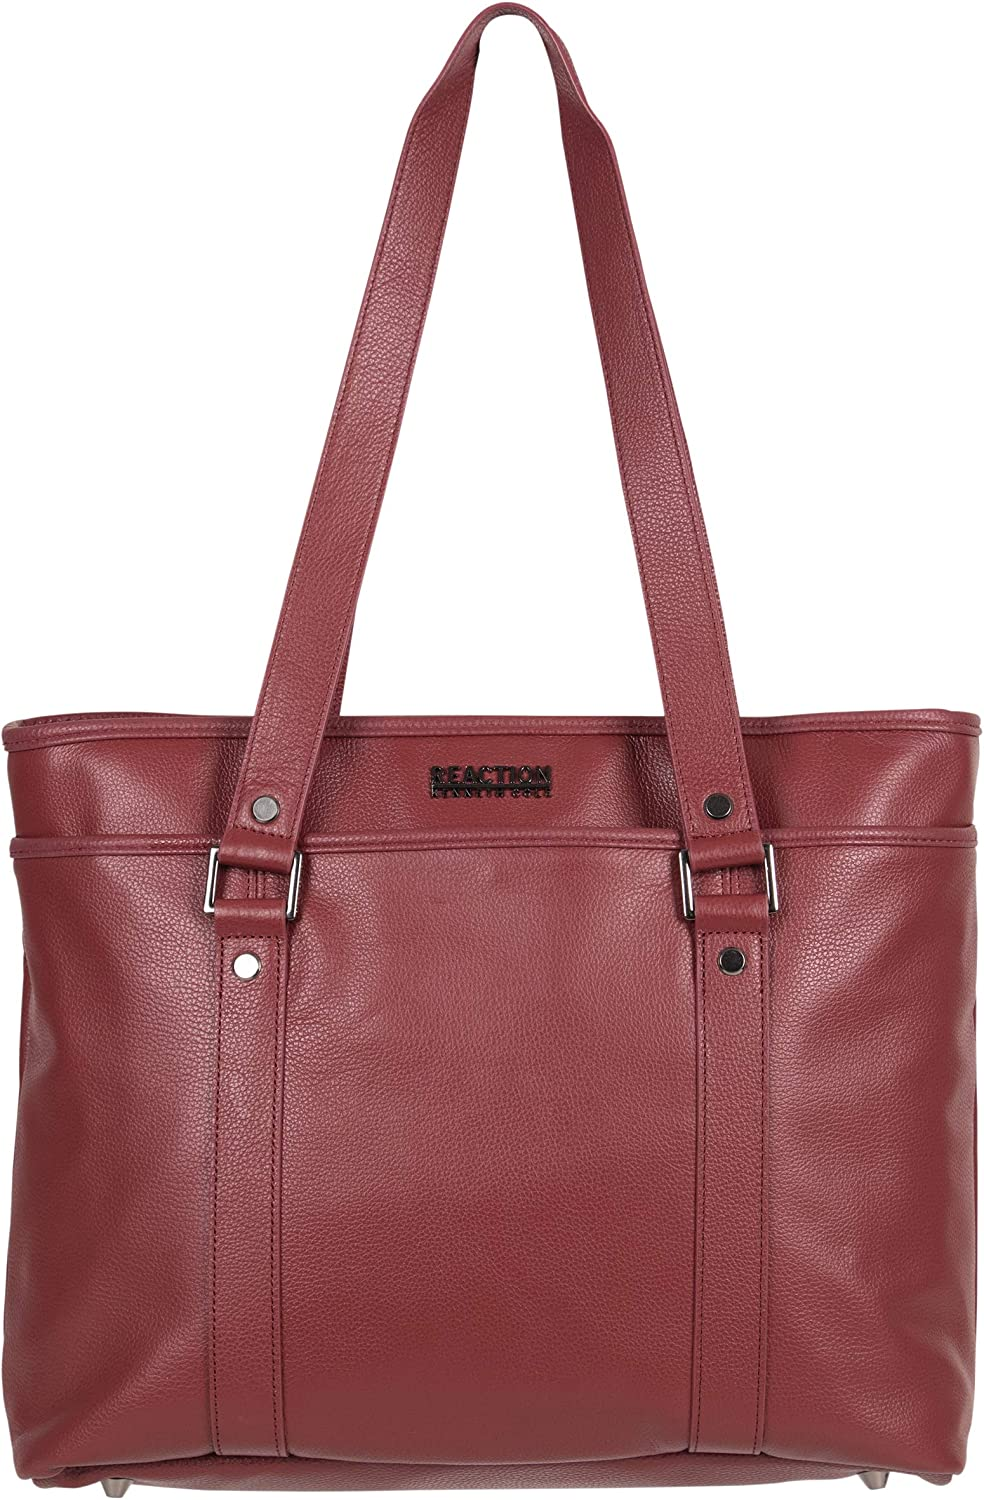 """Kenneth Cole Reaction Women's Downtown Darling Leather Single Compartment 16"""" Laptop Tote, Red"""